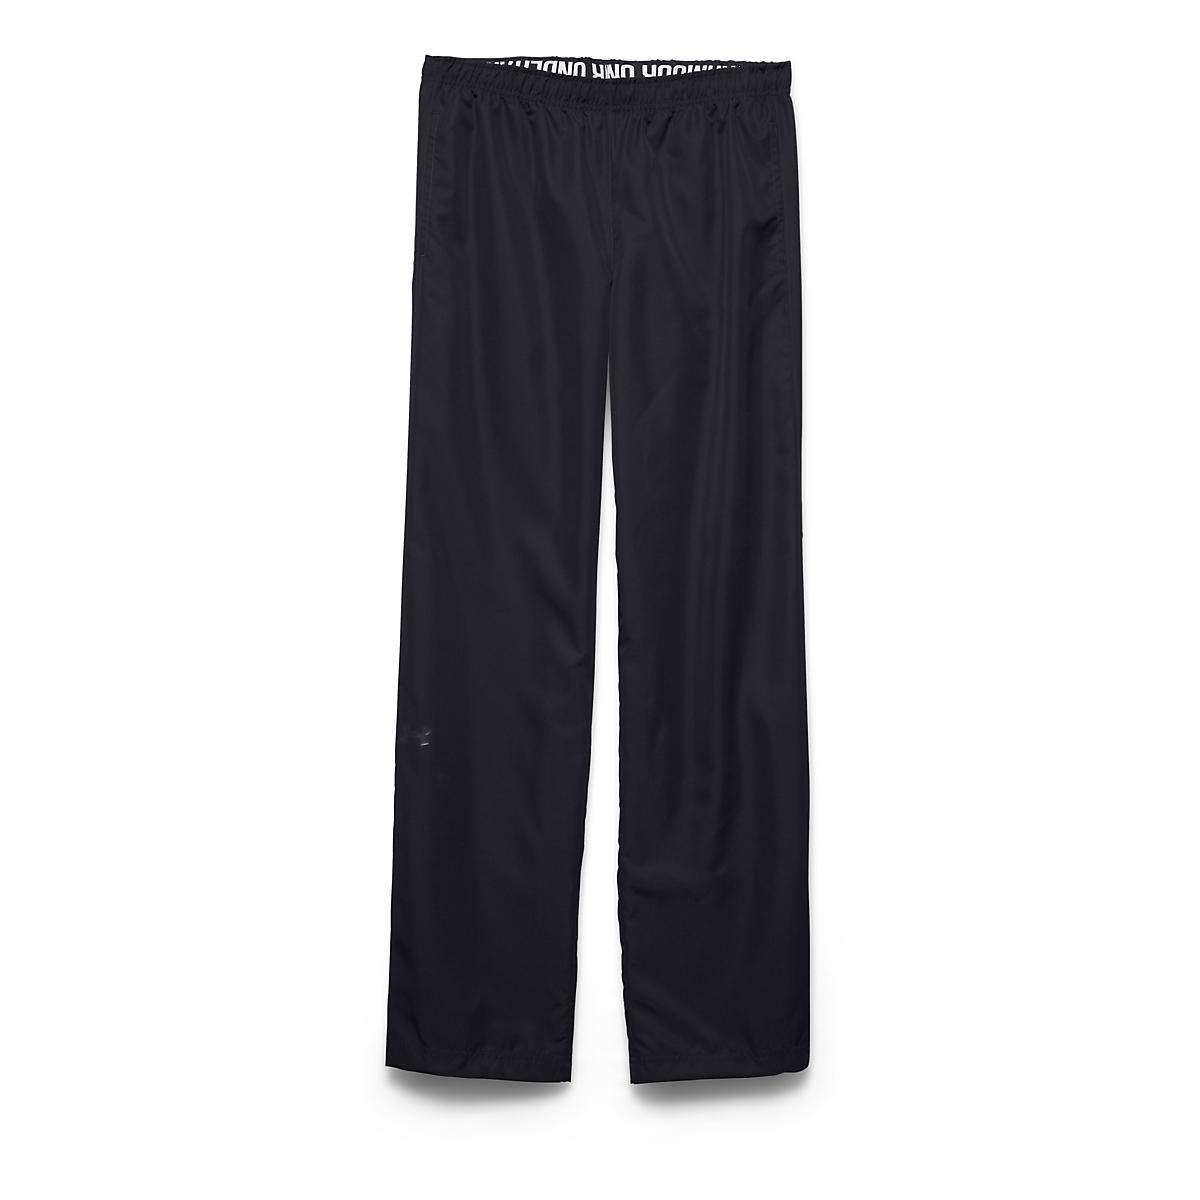 Women's Under Armour�Fanatical Woven Pant